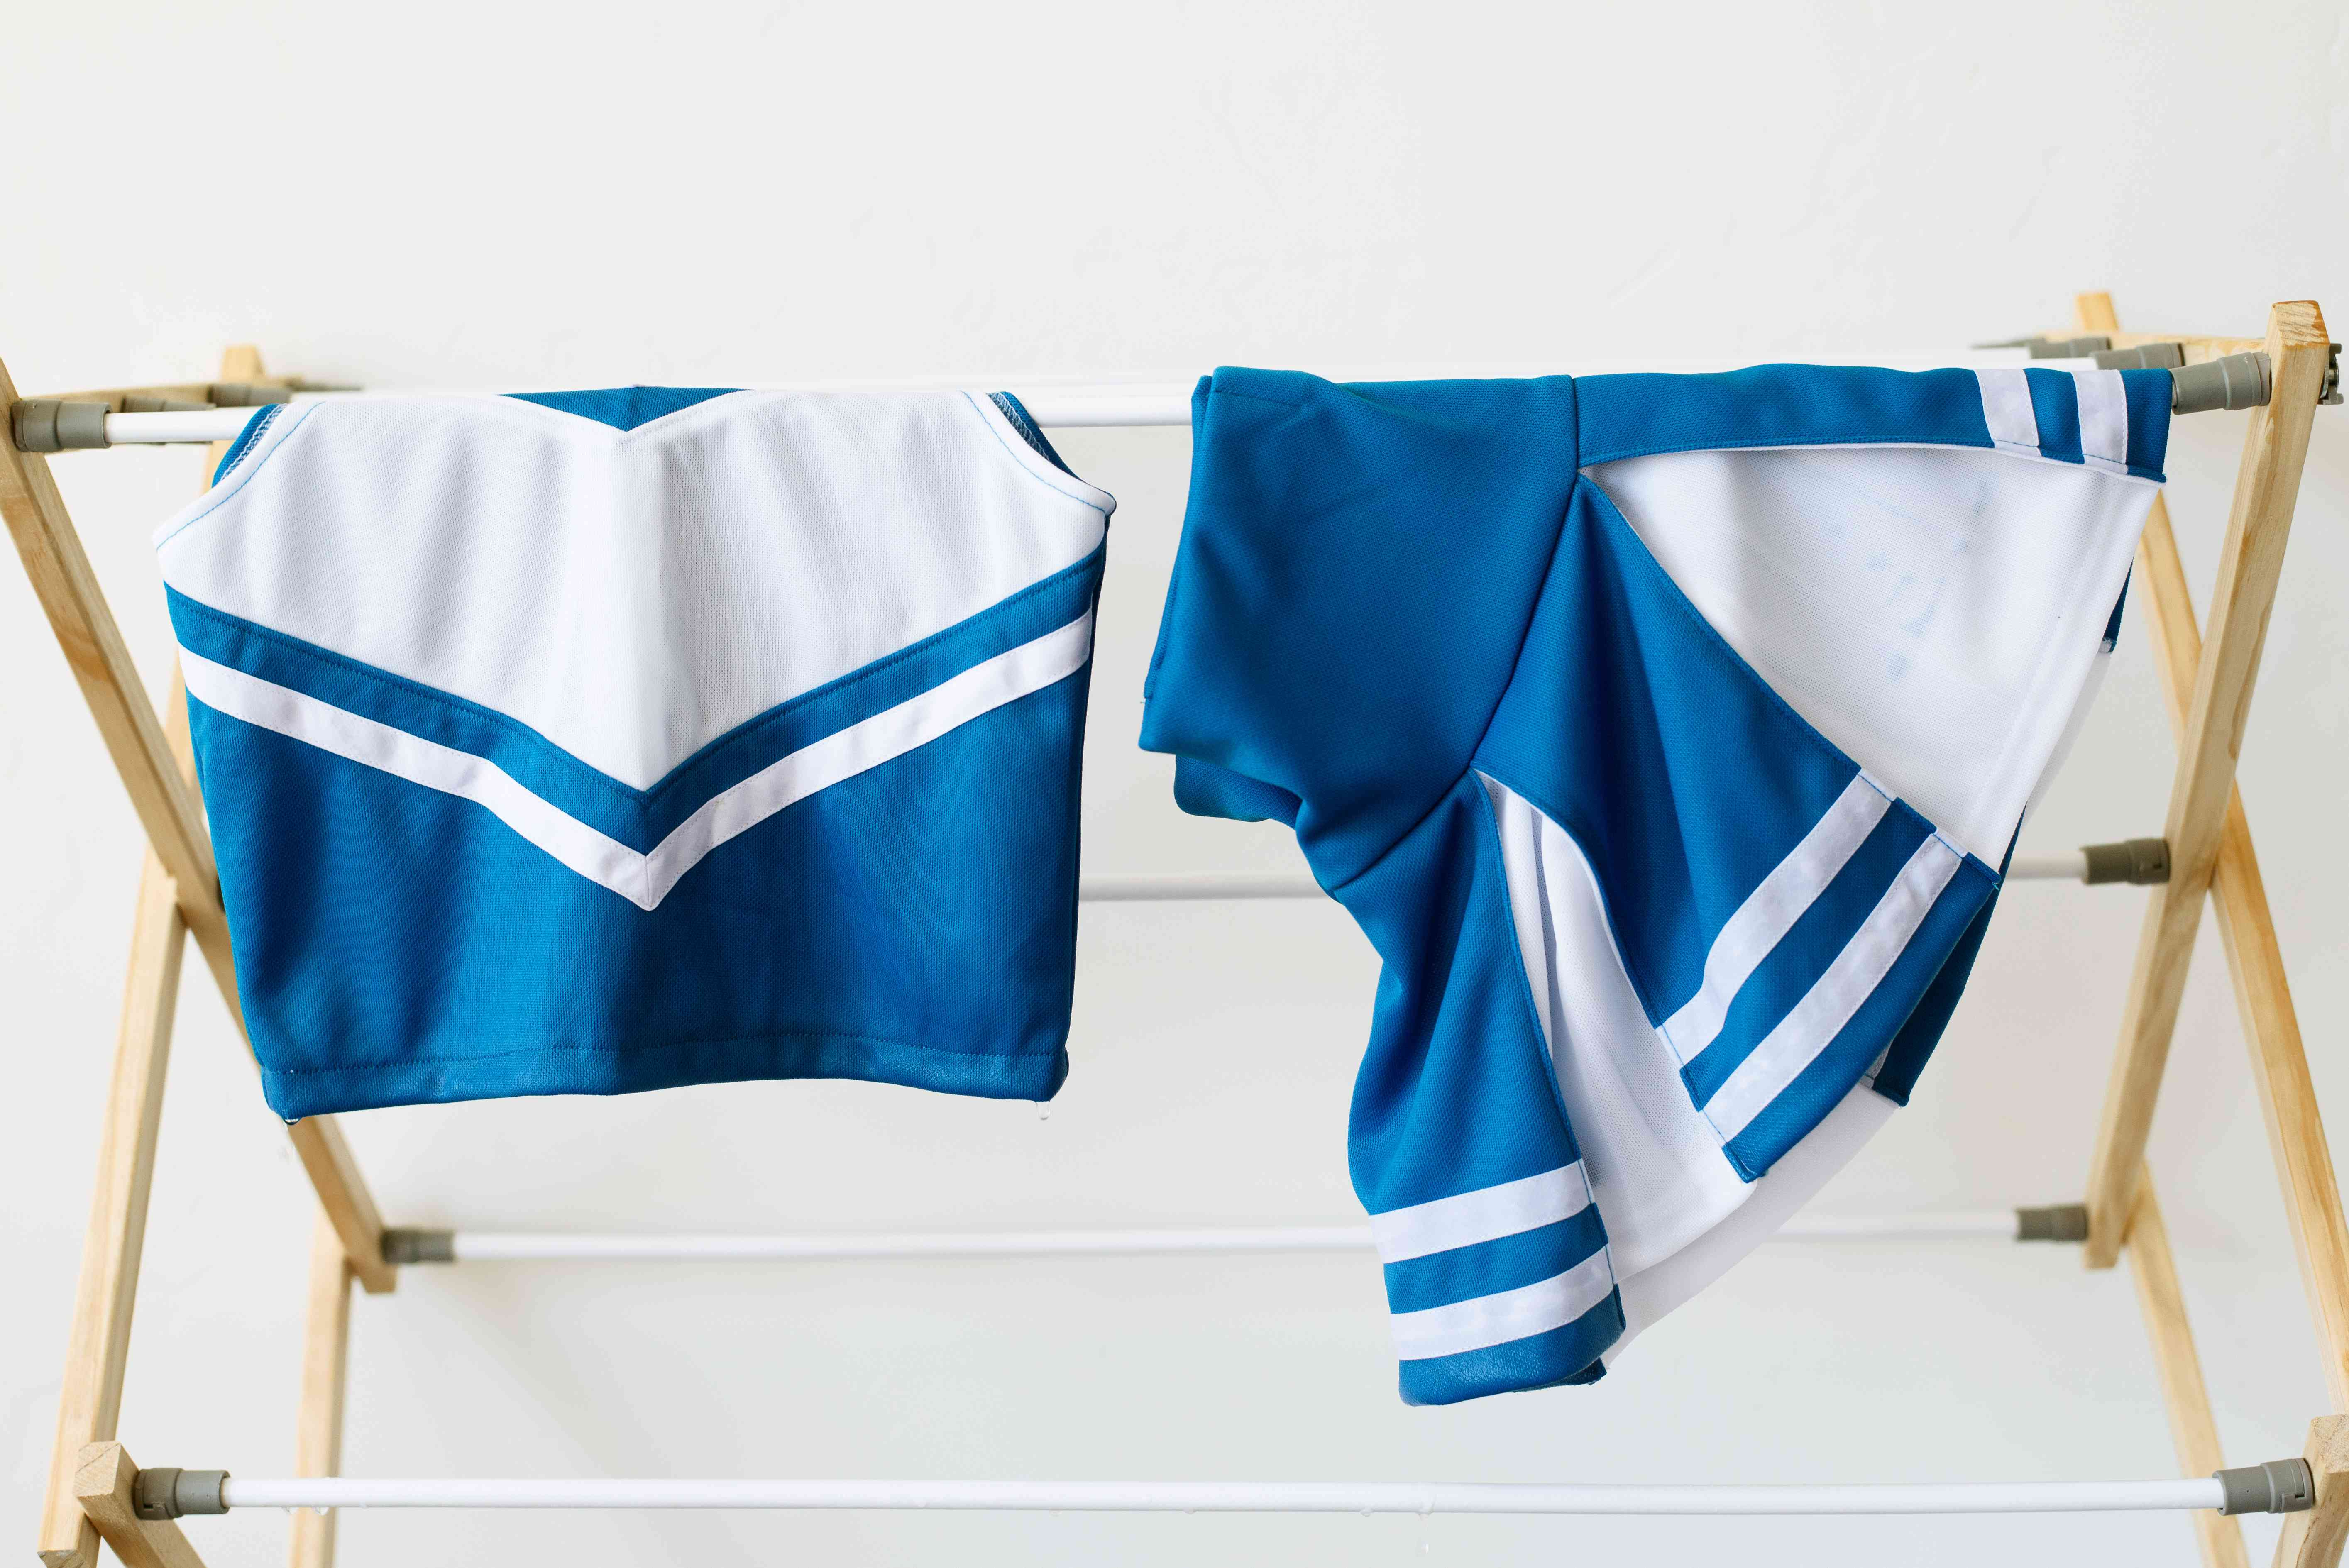 Blue and white cheerleading uniform hanging on drying rack to air dry